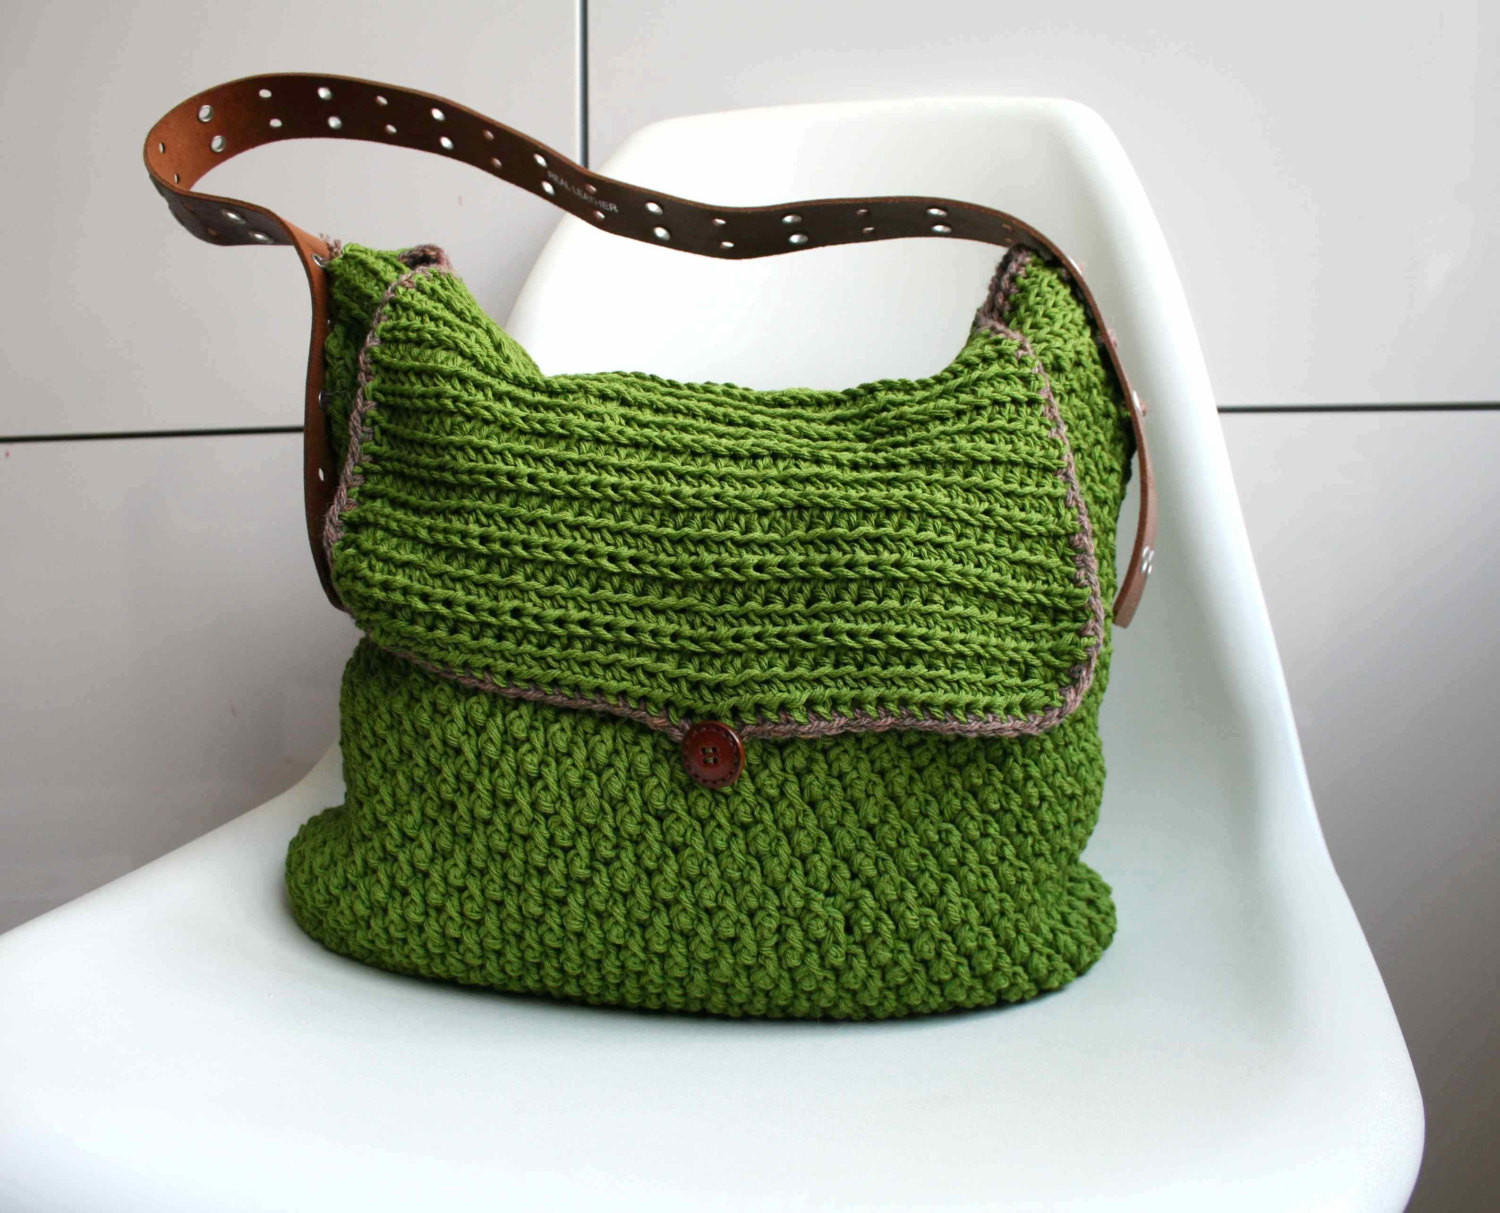 Crochet pattern crochet bag pattern Leather handle carry all